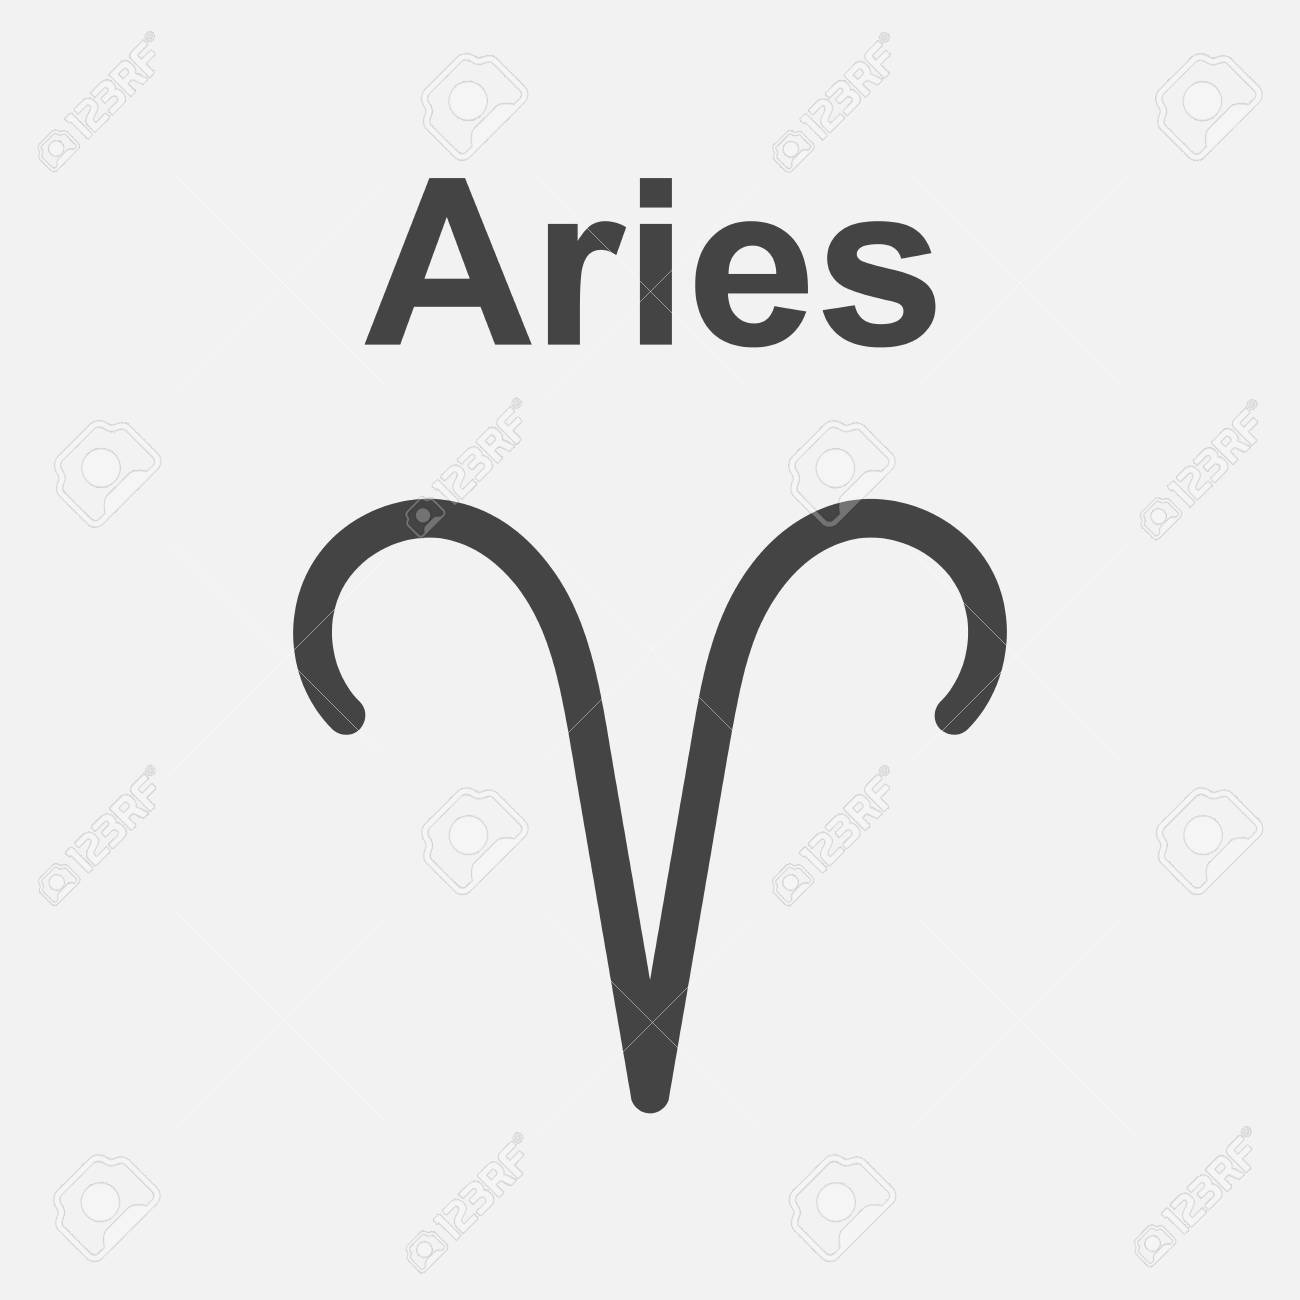 Aries Zodiac Sign Flat Astrology Vector Illustration On White